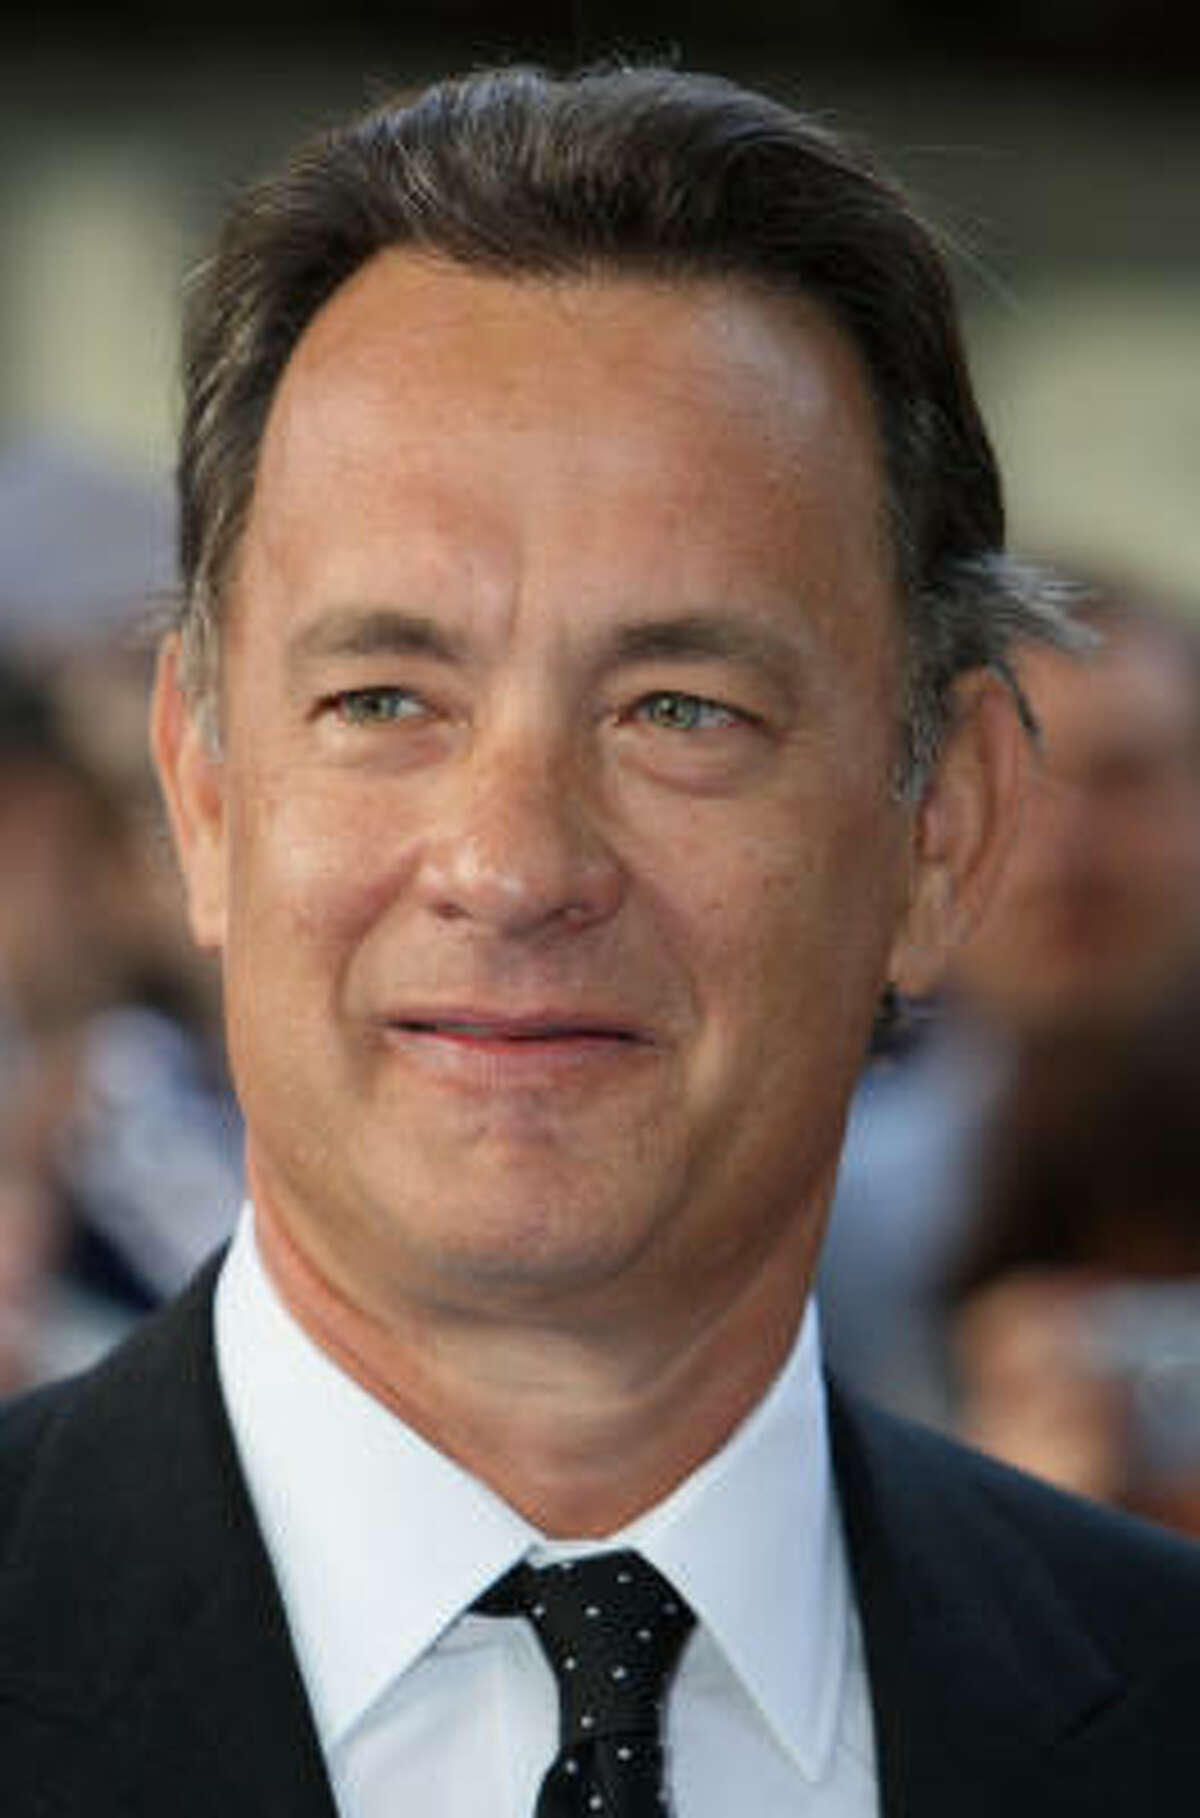 Tom Hanks Hanks has more ties to religion than his role as Dr. Robert Langdon in